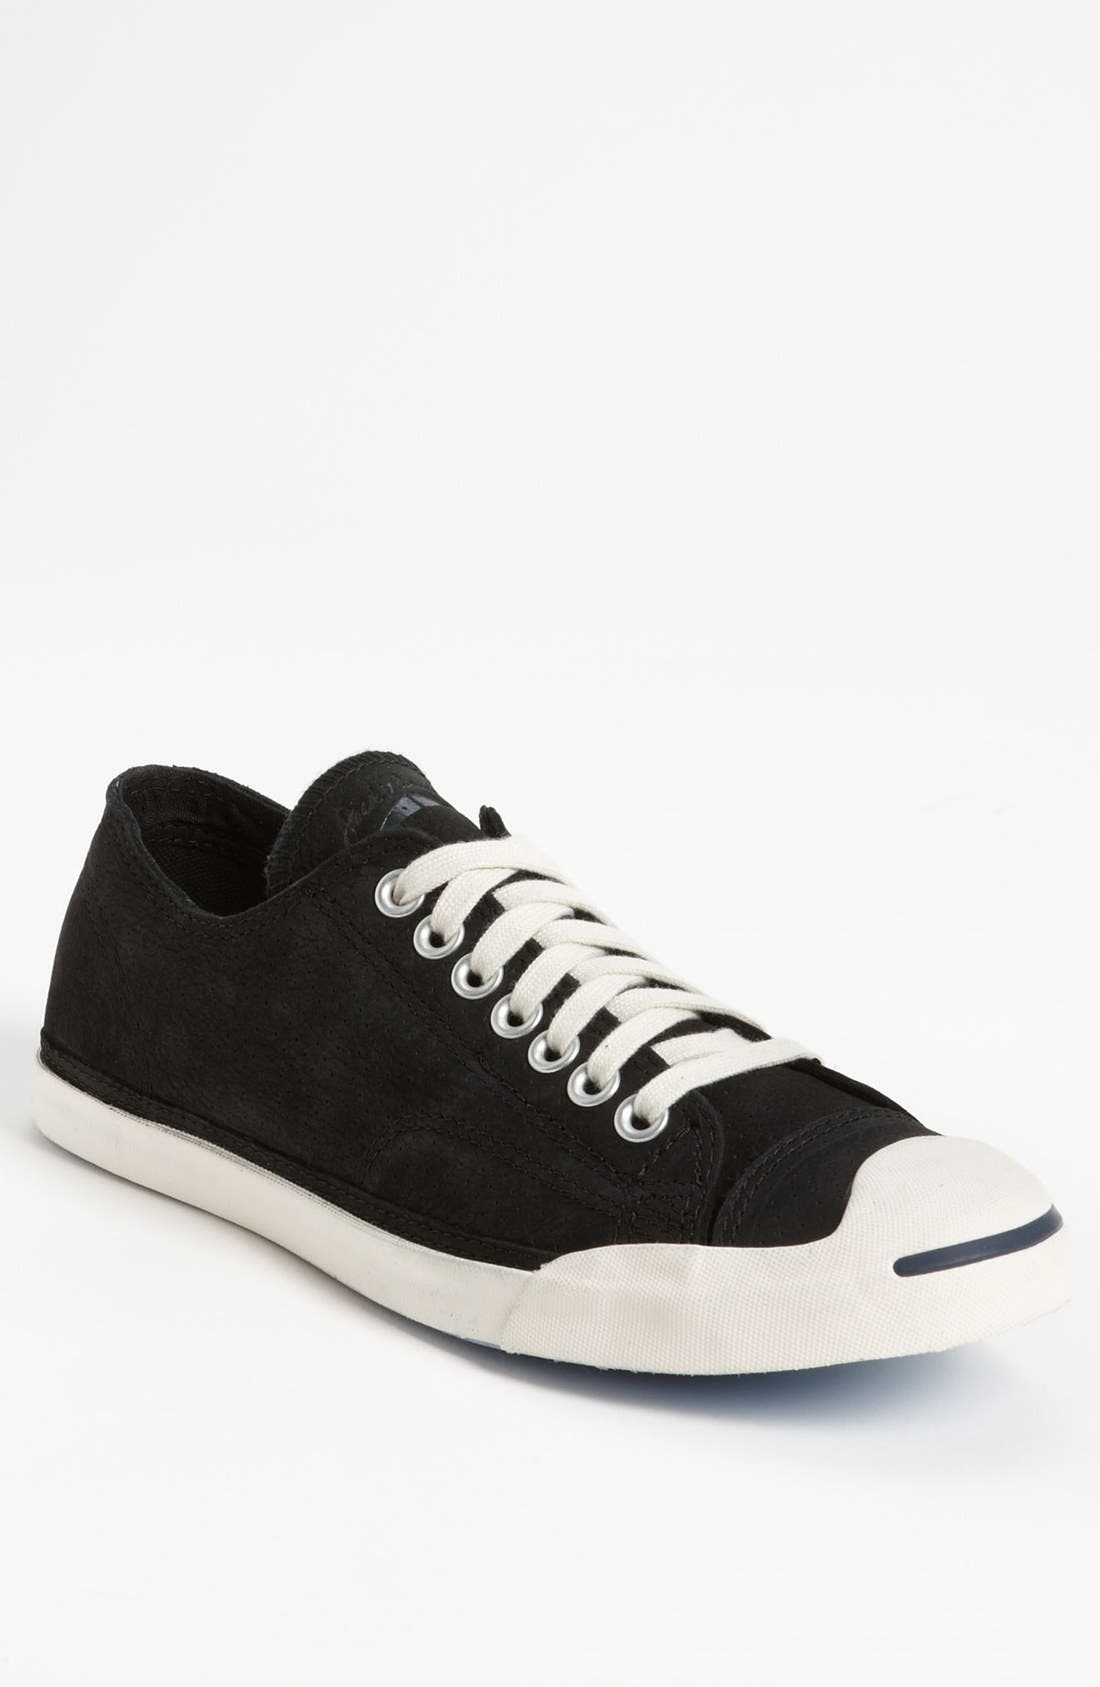 Alternate Image 1 Selected - Converse 'Jack Purcell - Low' Sneaker (Men)